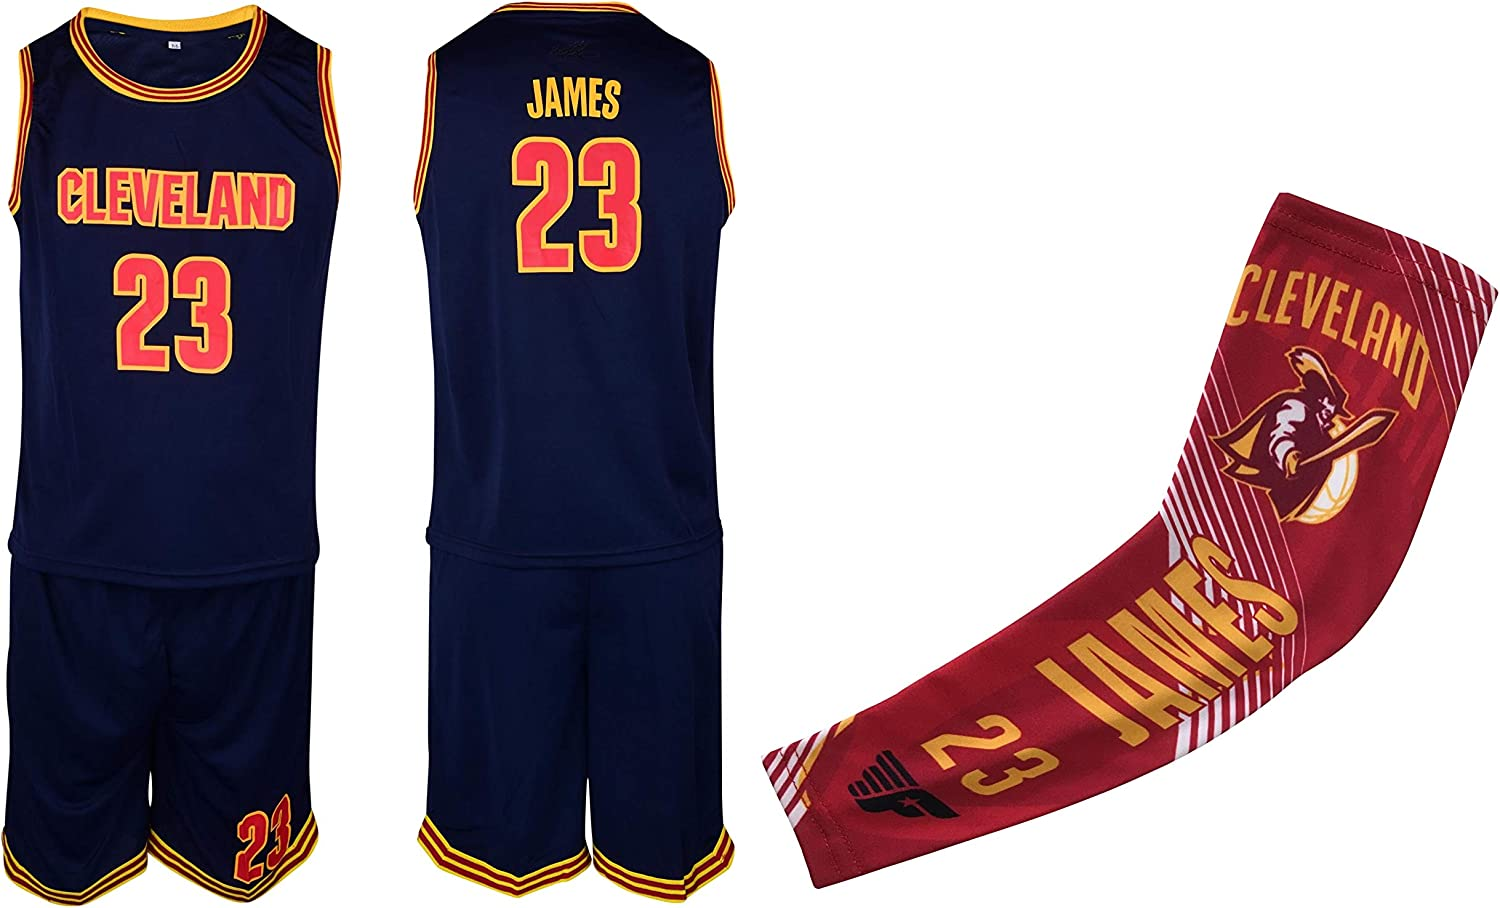 James #23 Kids Basketball Jersey Shorts Set Youth Sizes Premium Quality Gift Set with Arm Sleeve